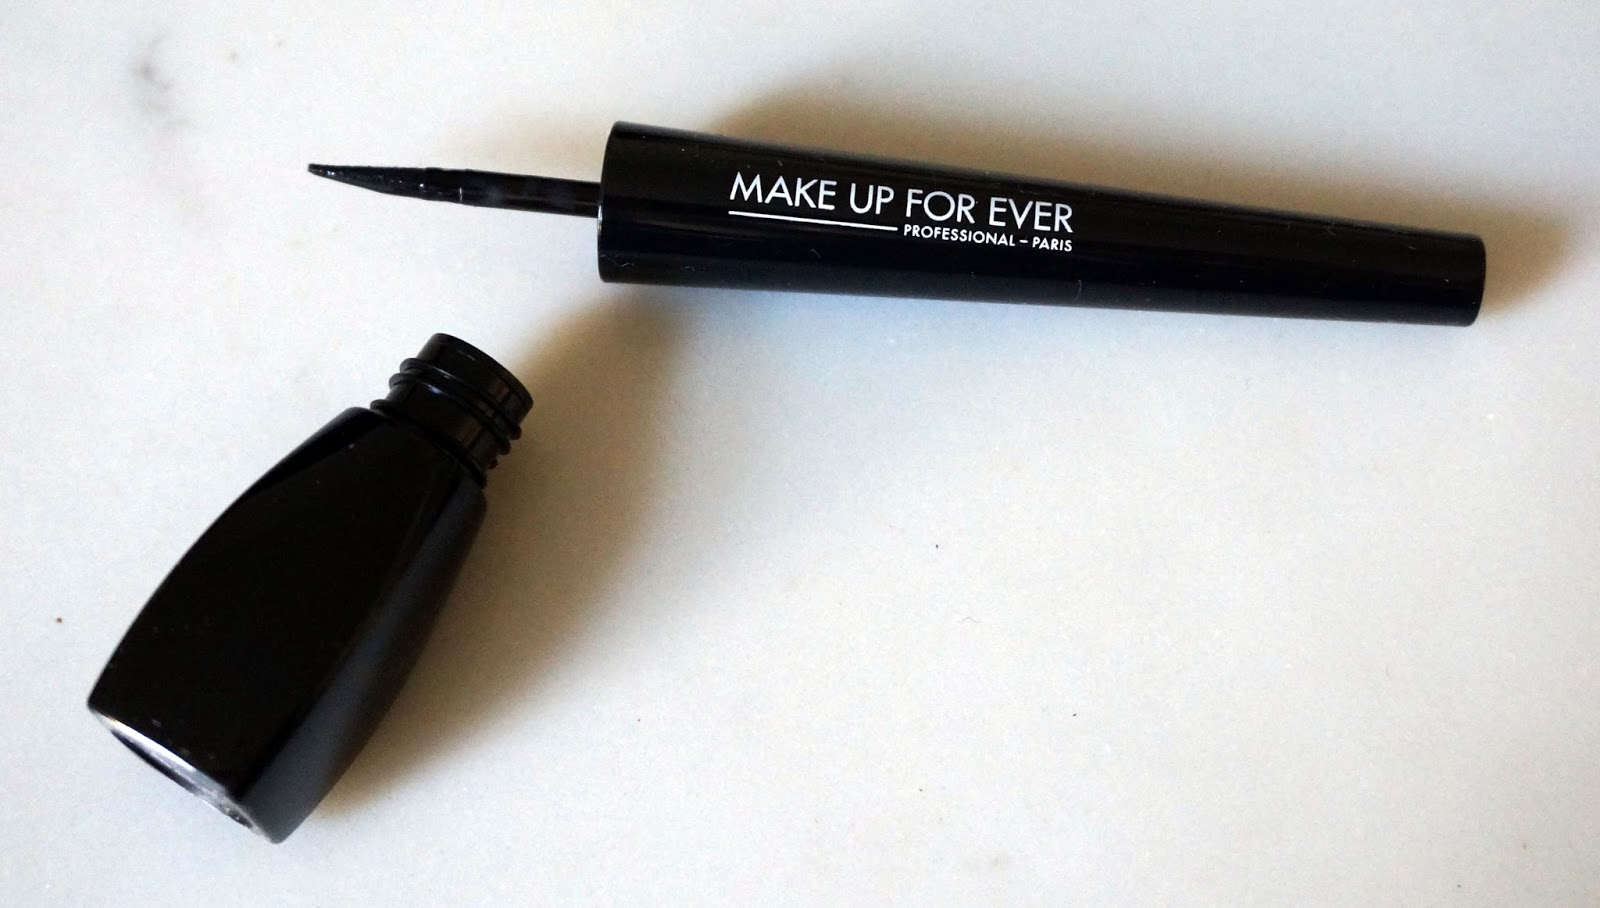 Make Up For Ever Ink Liner in Black